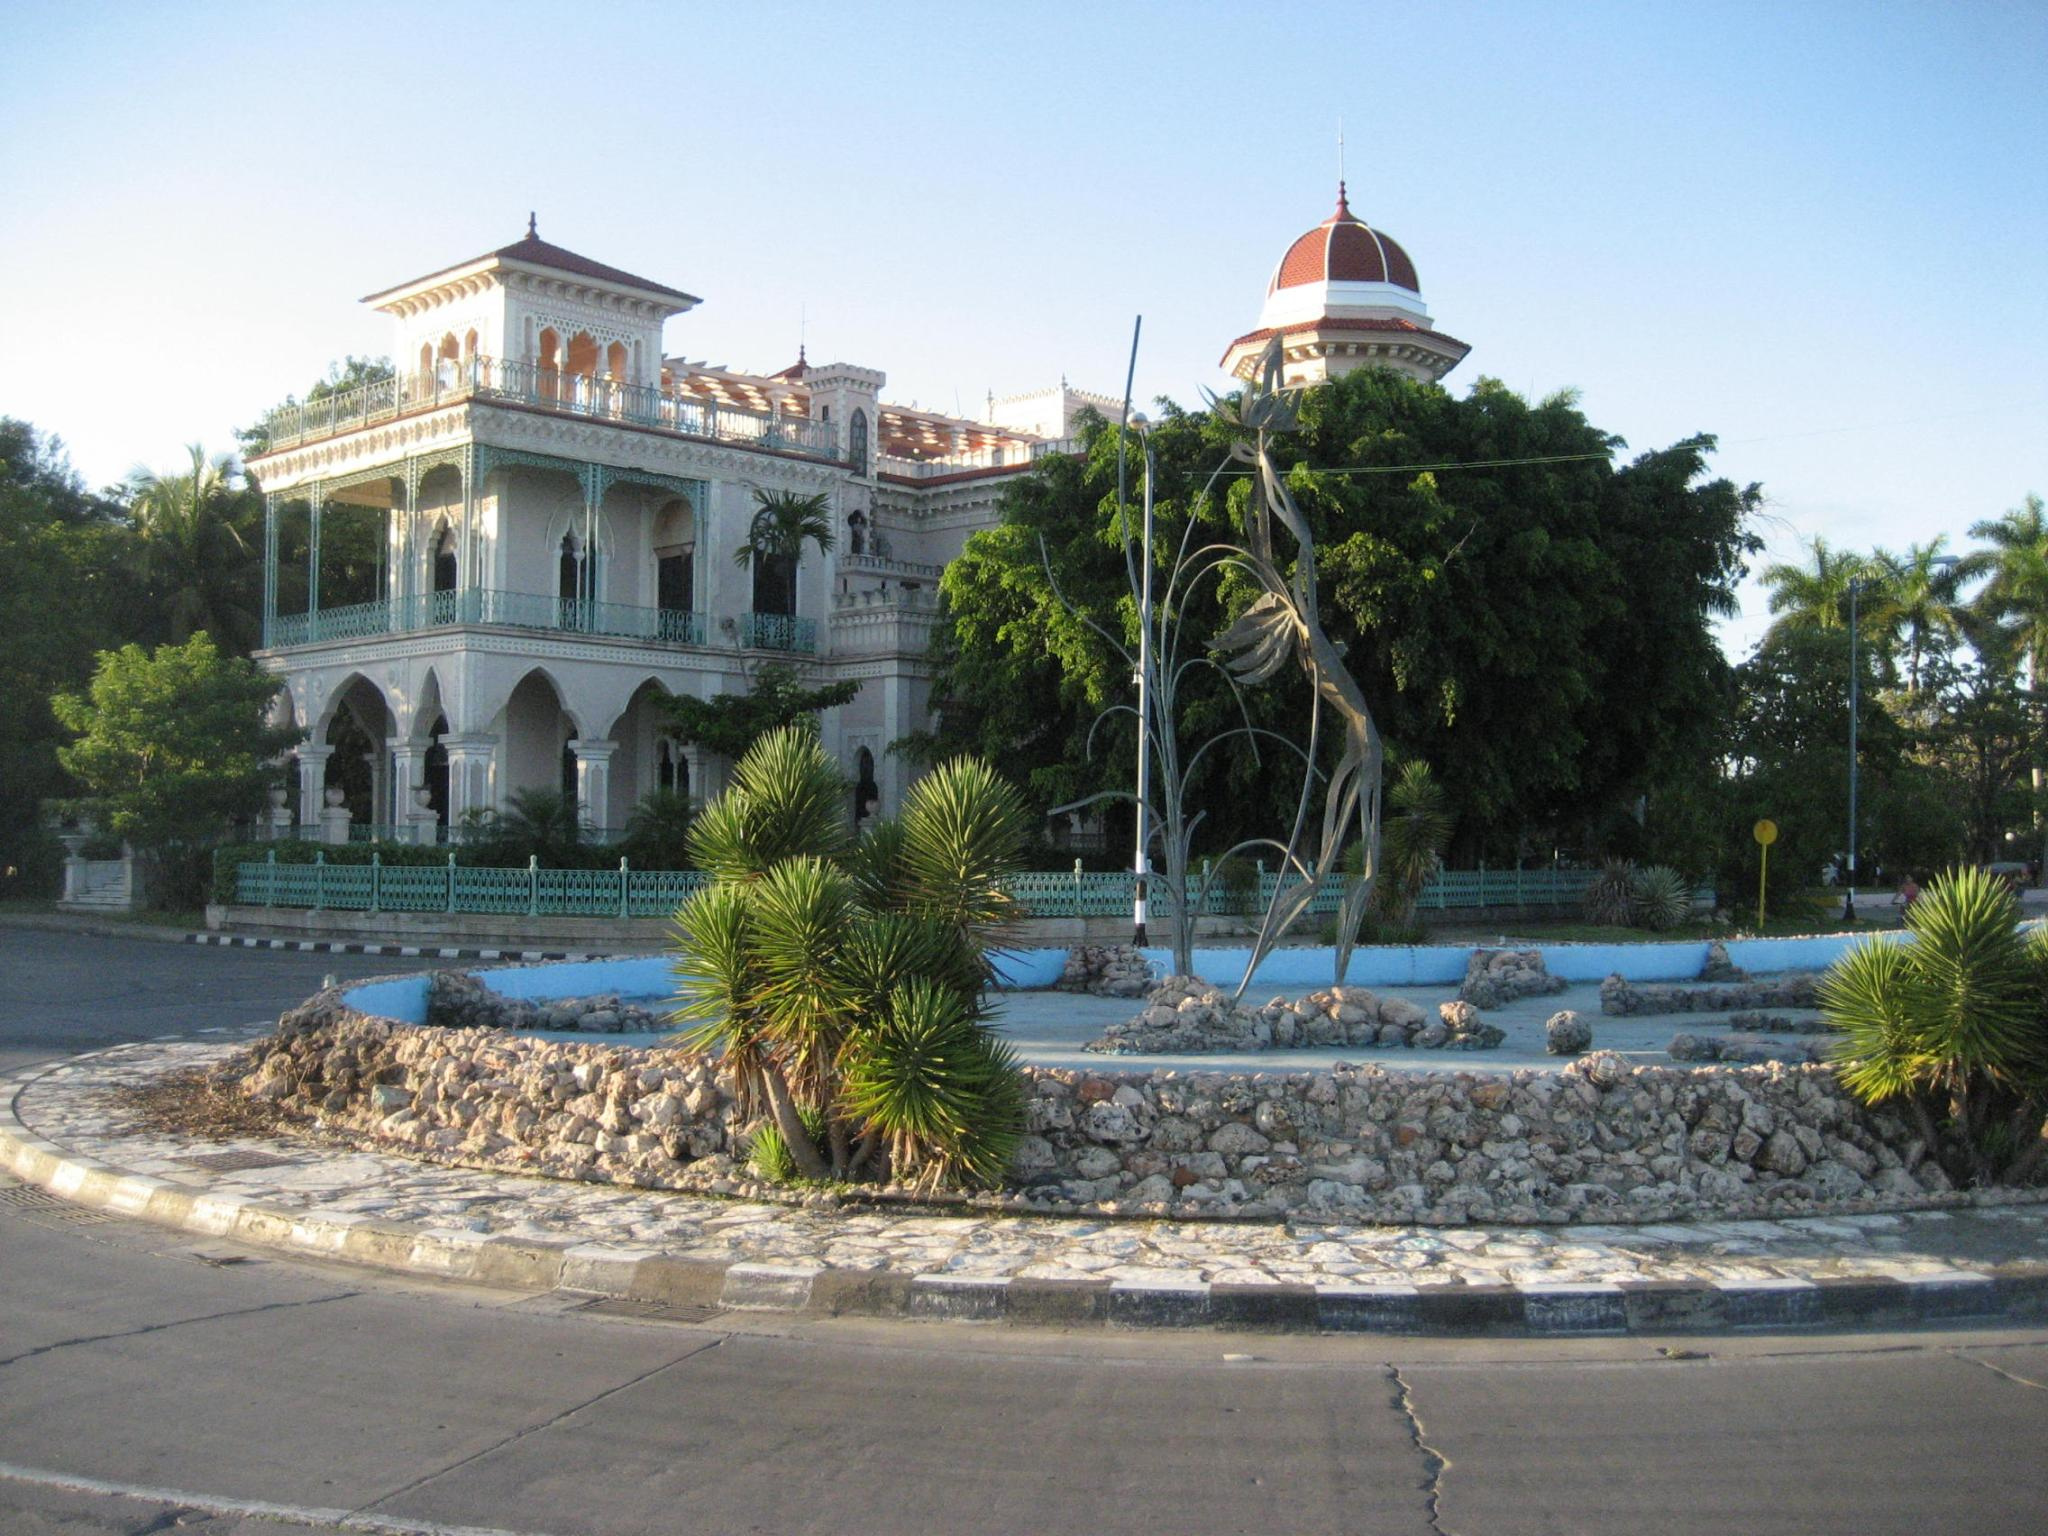 Palacio de Valle things to do in Cienfuegos, Cuba